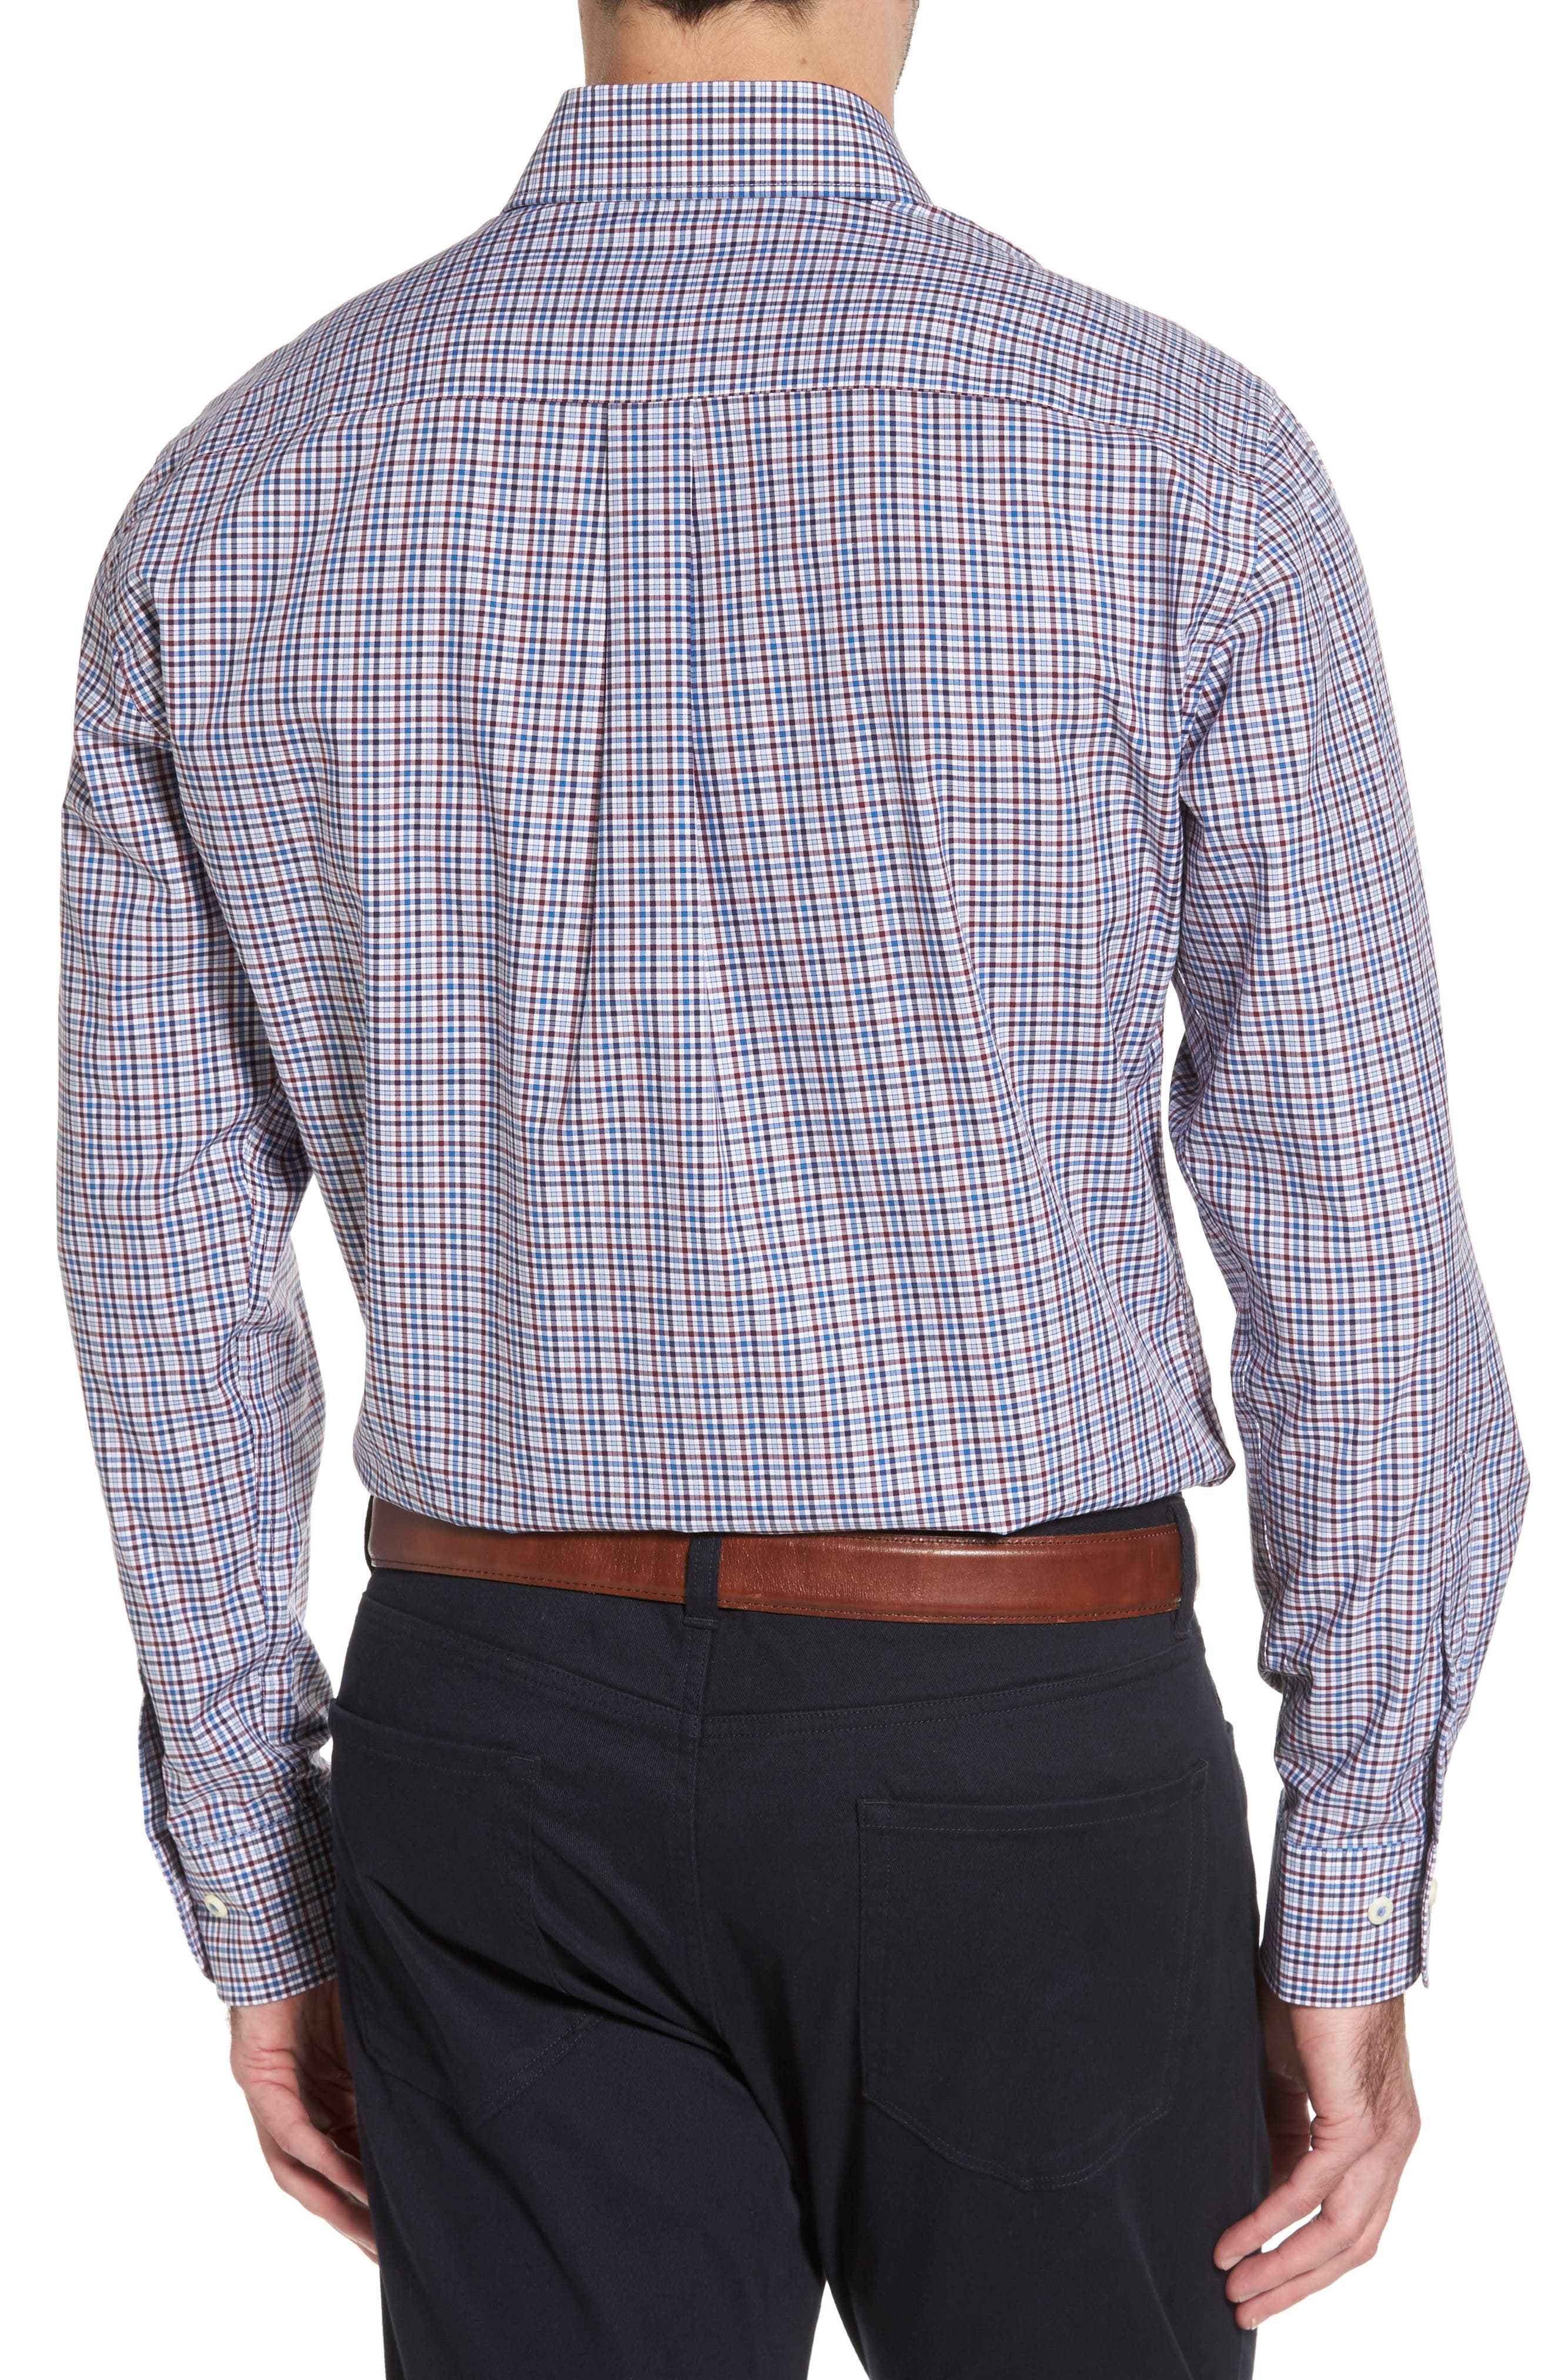 Crown Finish Vine Check Regular Fit Sport Shirt,                             Alternate thumbnail 2, color,